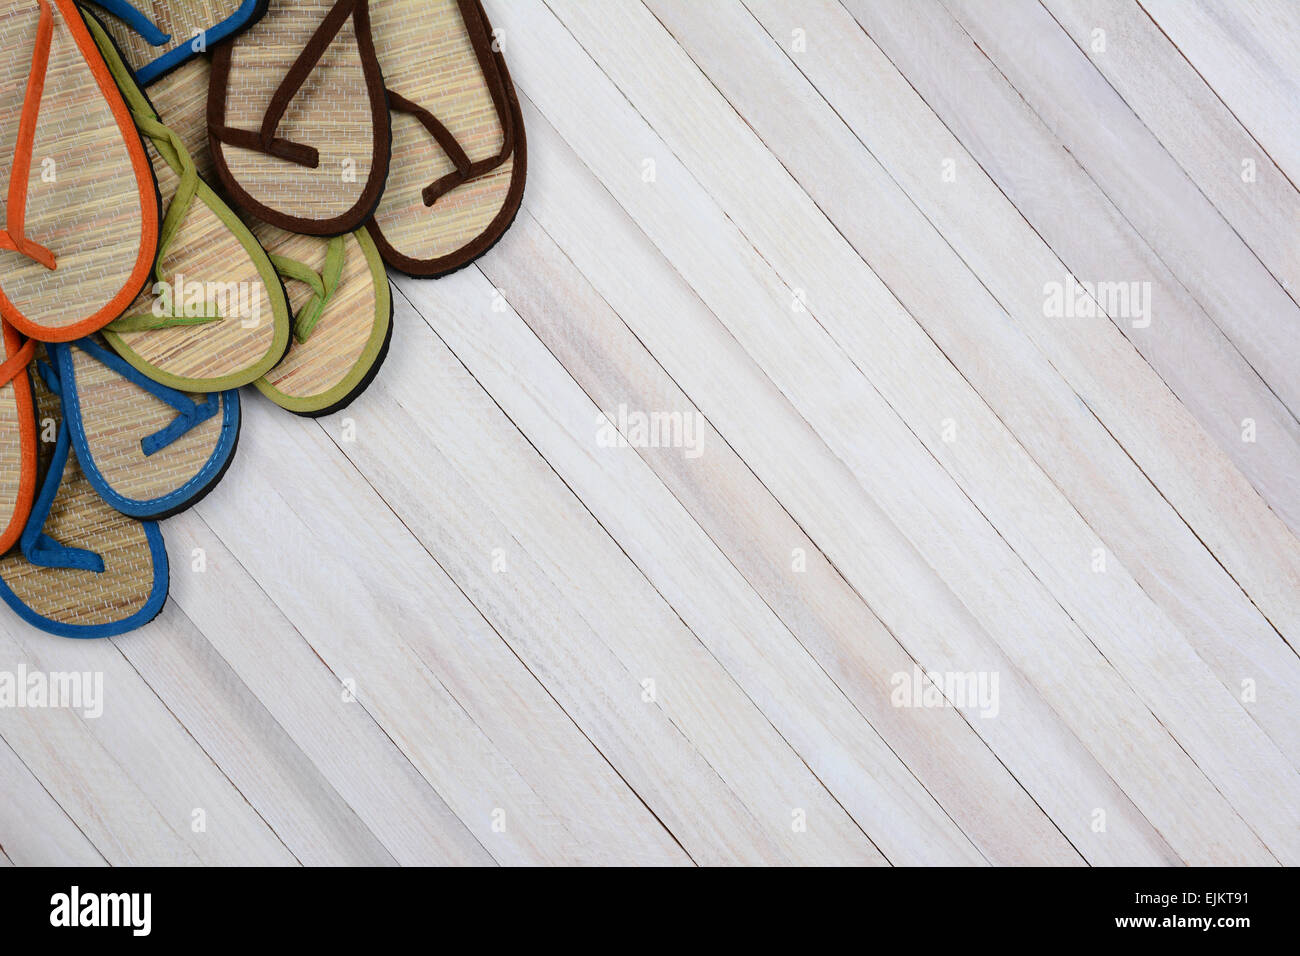 Summer sandals on a rustic white wood surface. The flip flops are set in the upper left side and corner of the frame - Stock Image